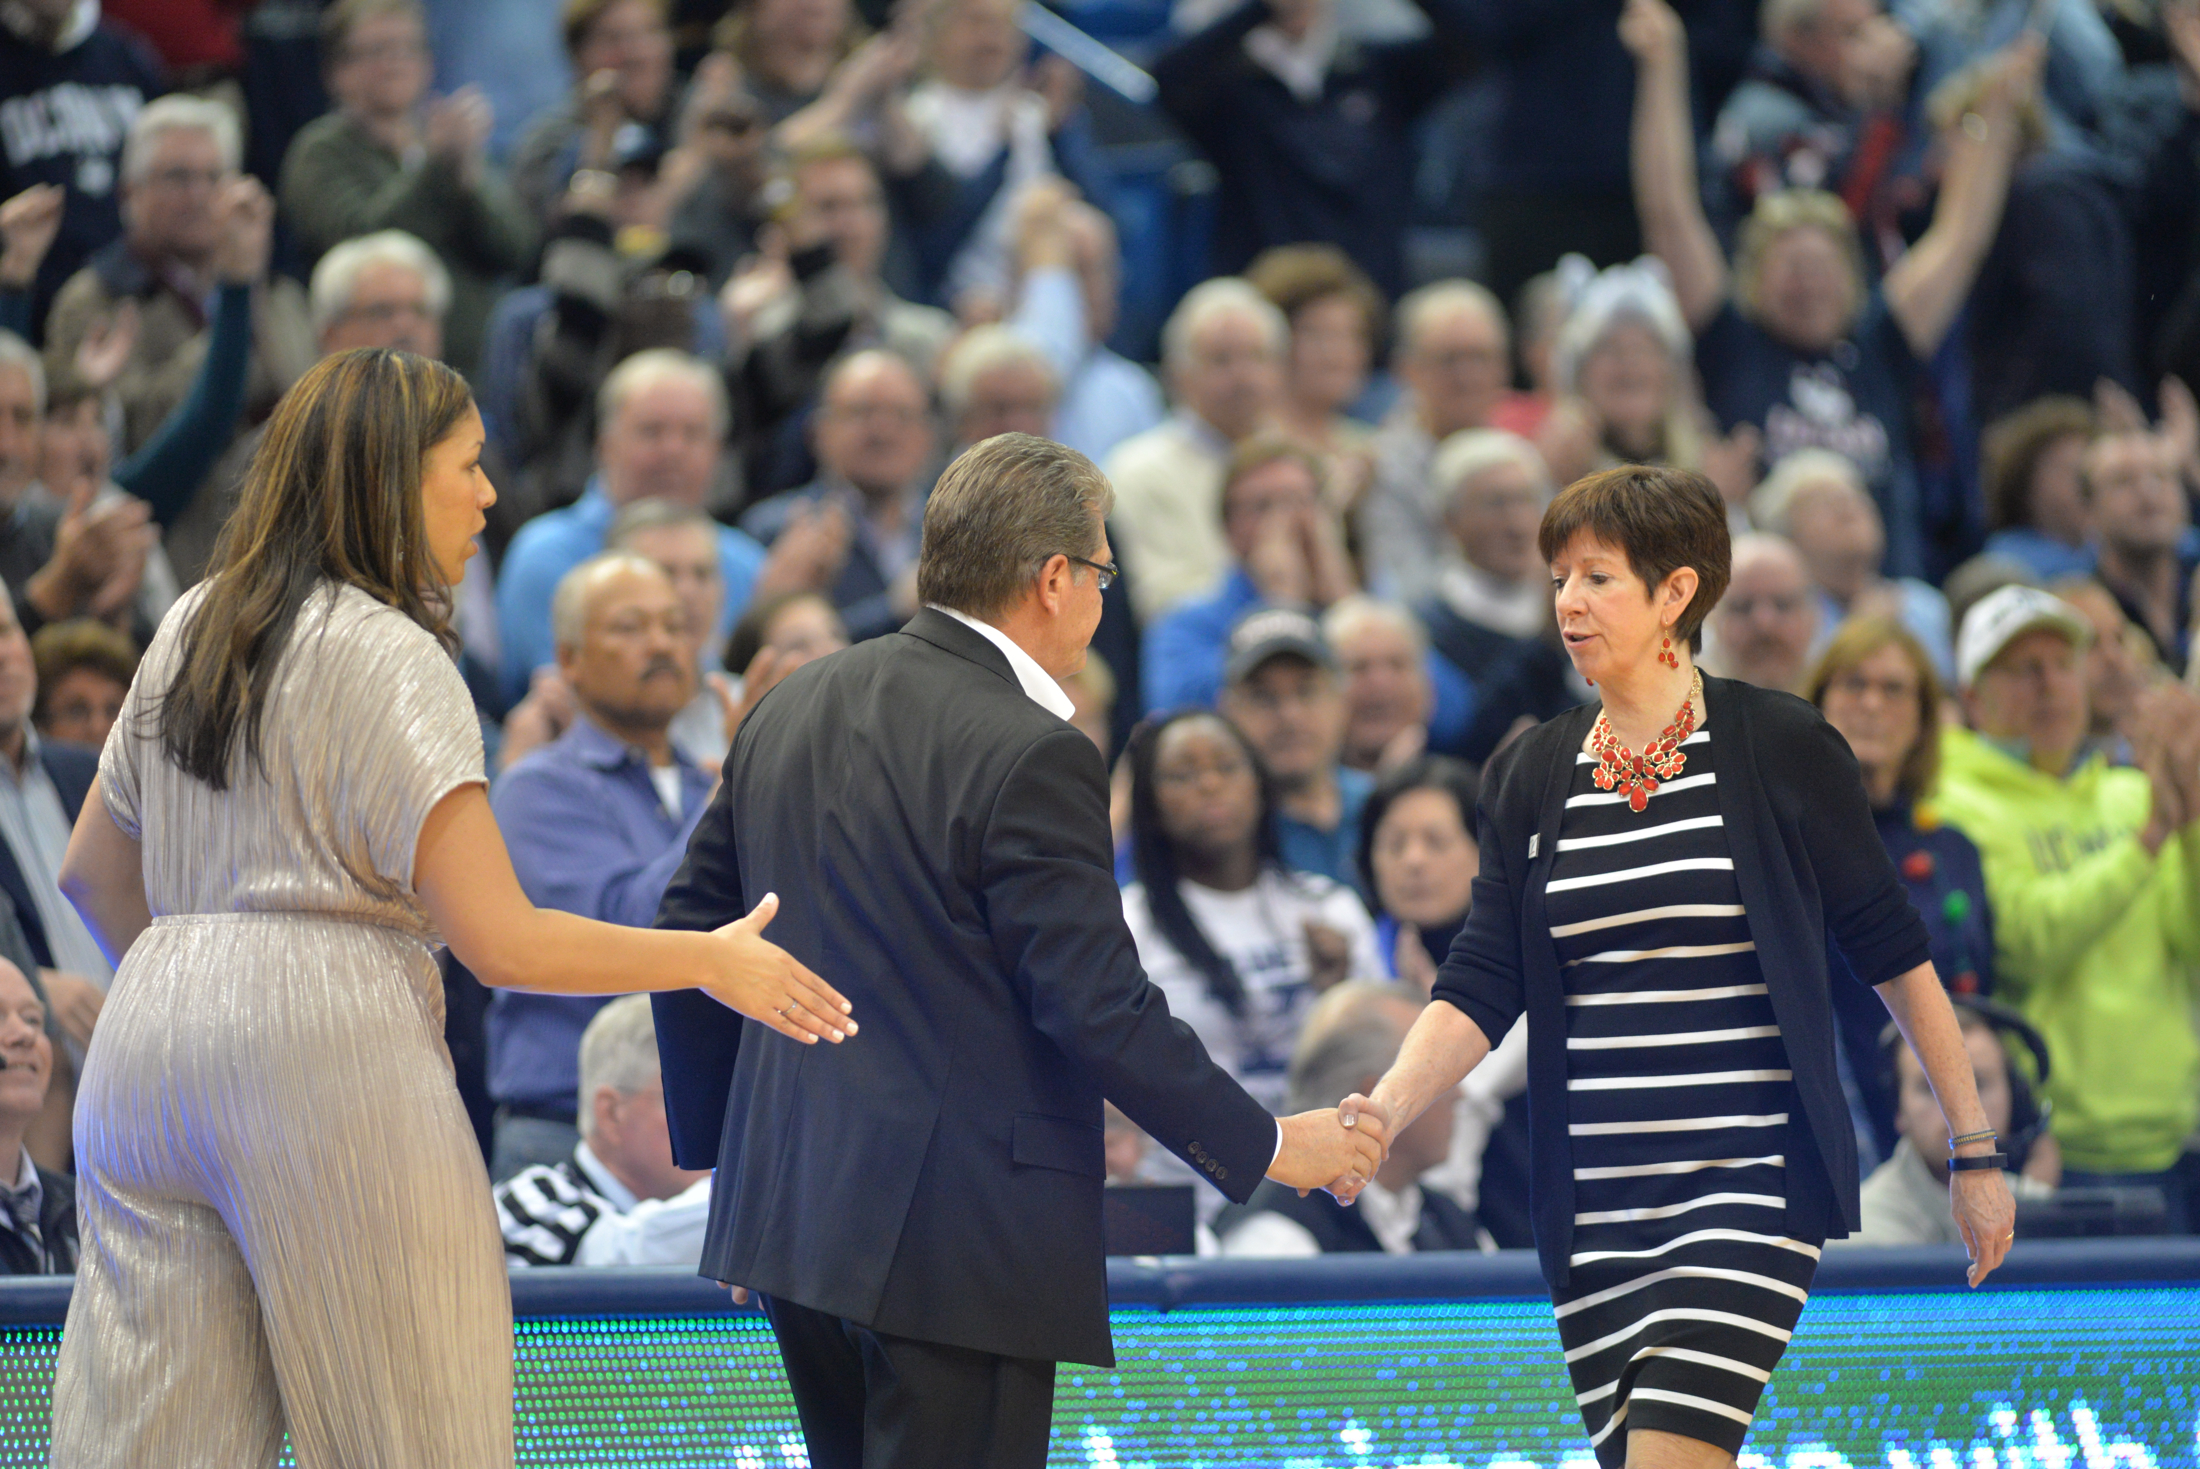 Geno Auriemma and Muffet McGraw greet in XL Center before the game starts. The Huskies are the ranked first while Notre Dame is ranked third.(Amar Batra/The Daily Campus)